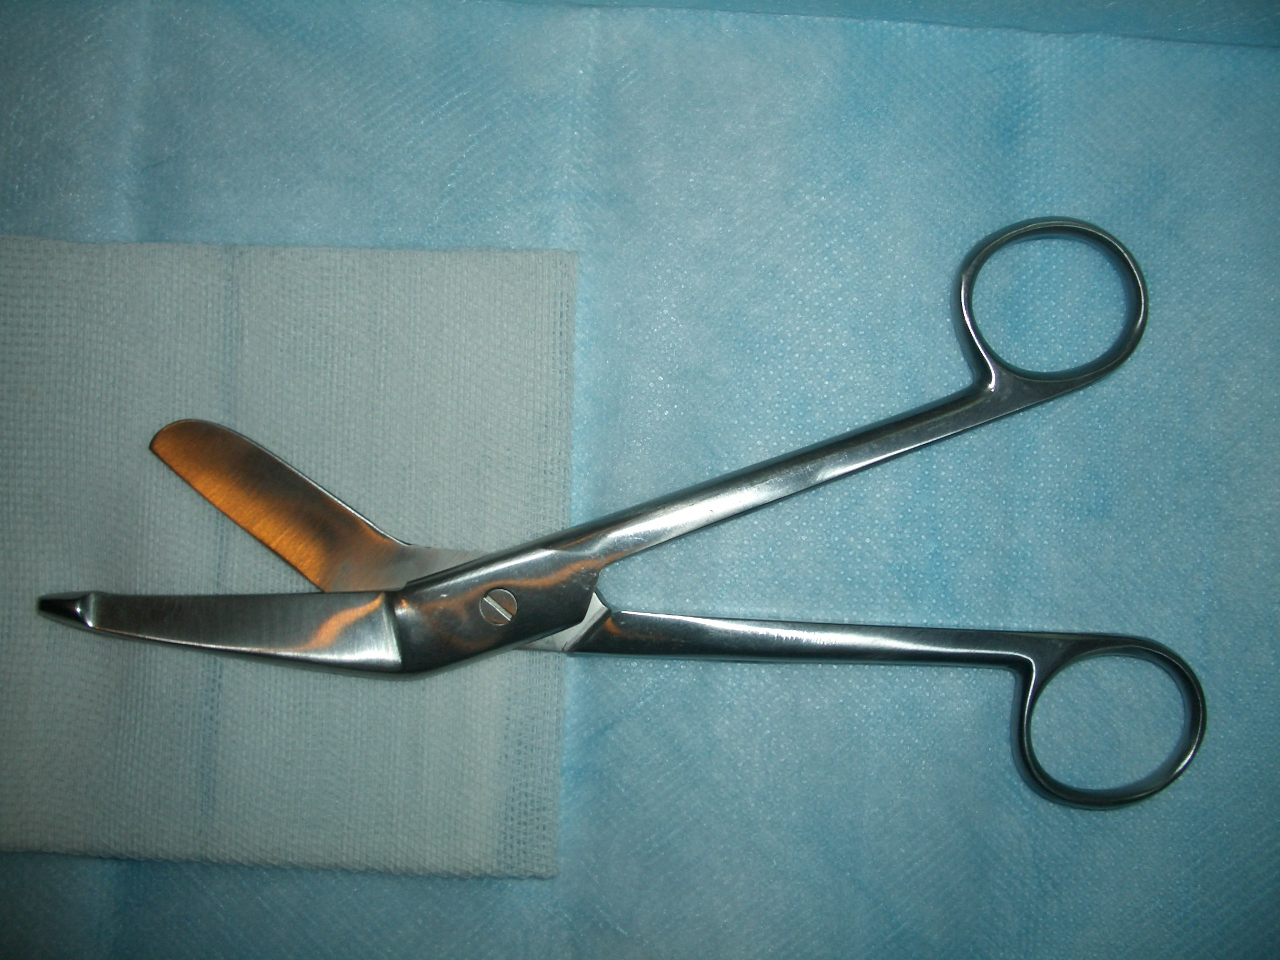 scissors Doctors Reveal Most Amazing Excuses Patients Give For Sex Injuries